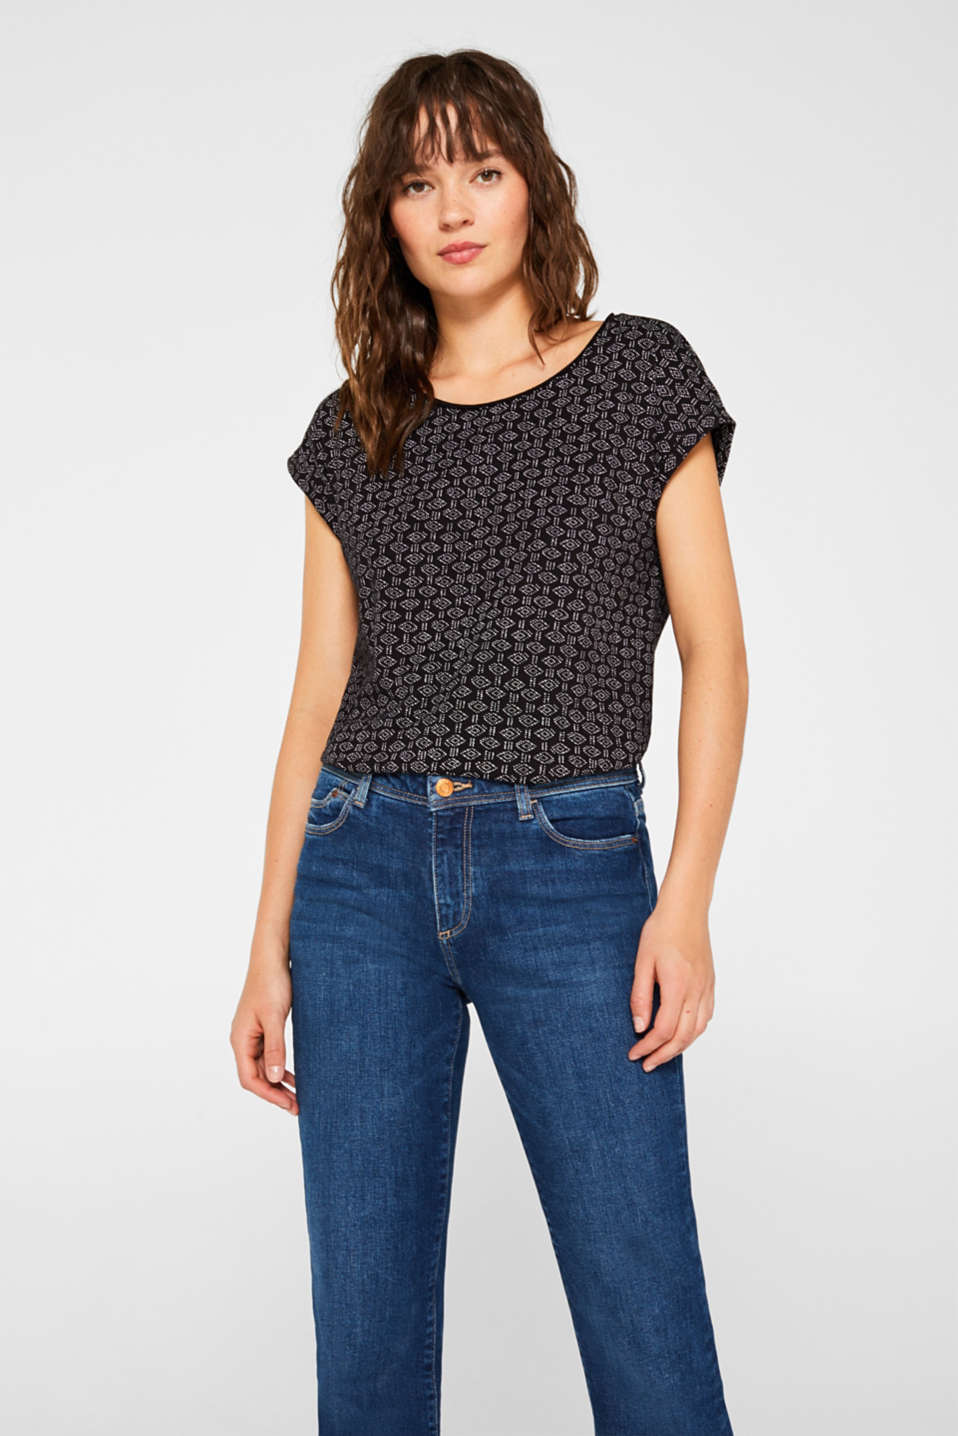 Esprit - Printed top with turn-up sleeves, 100% cotton